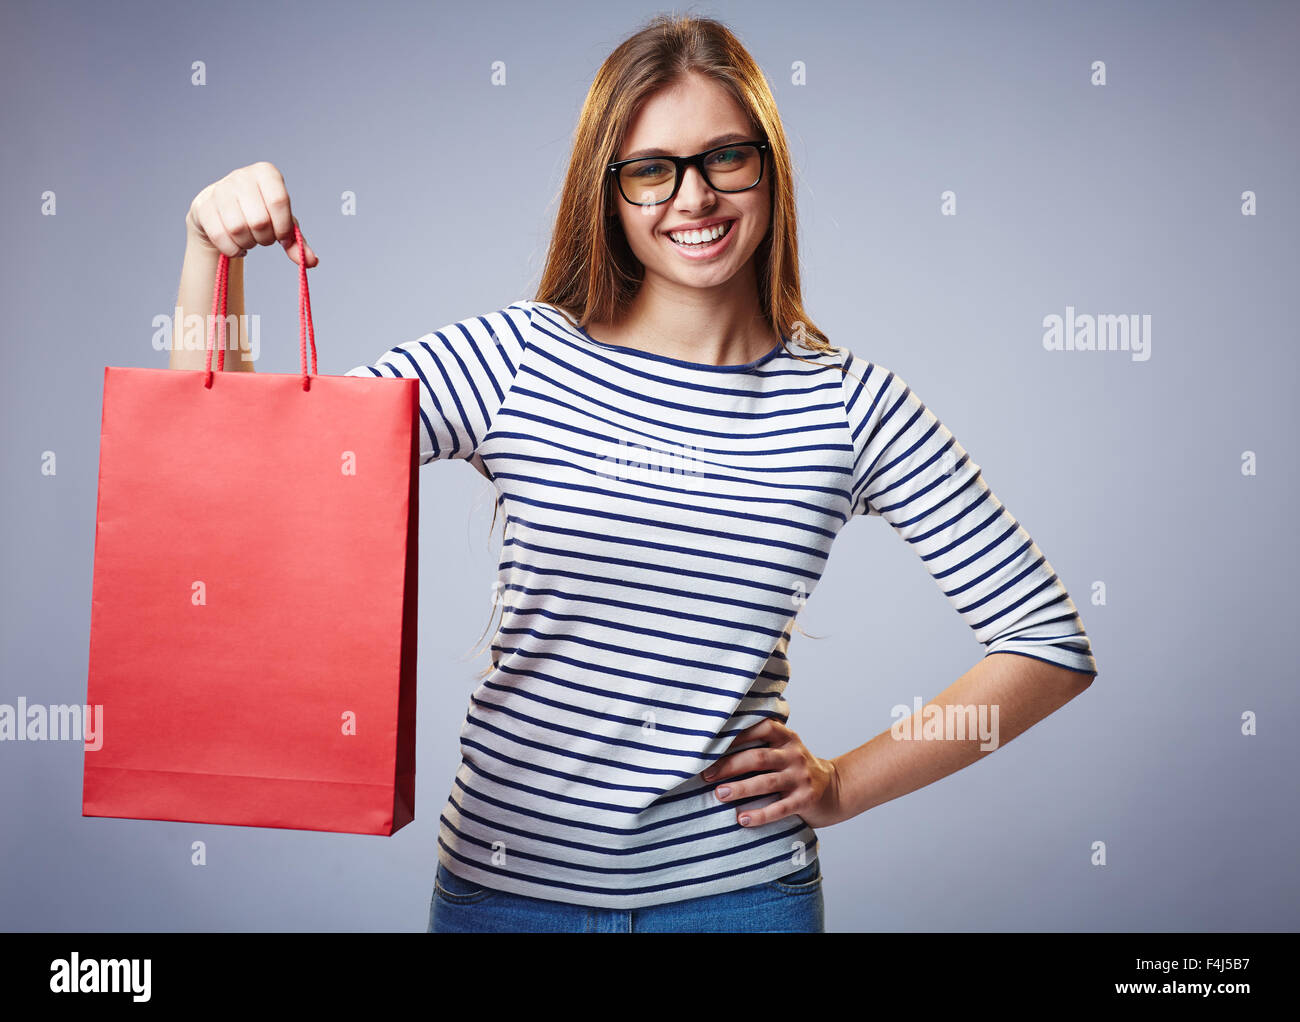 Pretty shopper showing red paperbag and looking at camera - Stock Image